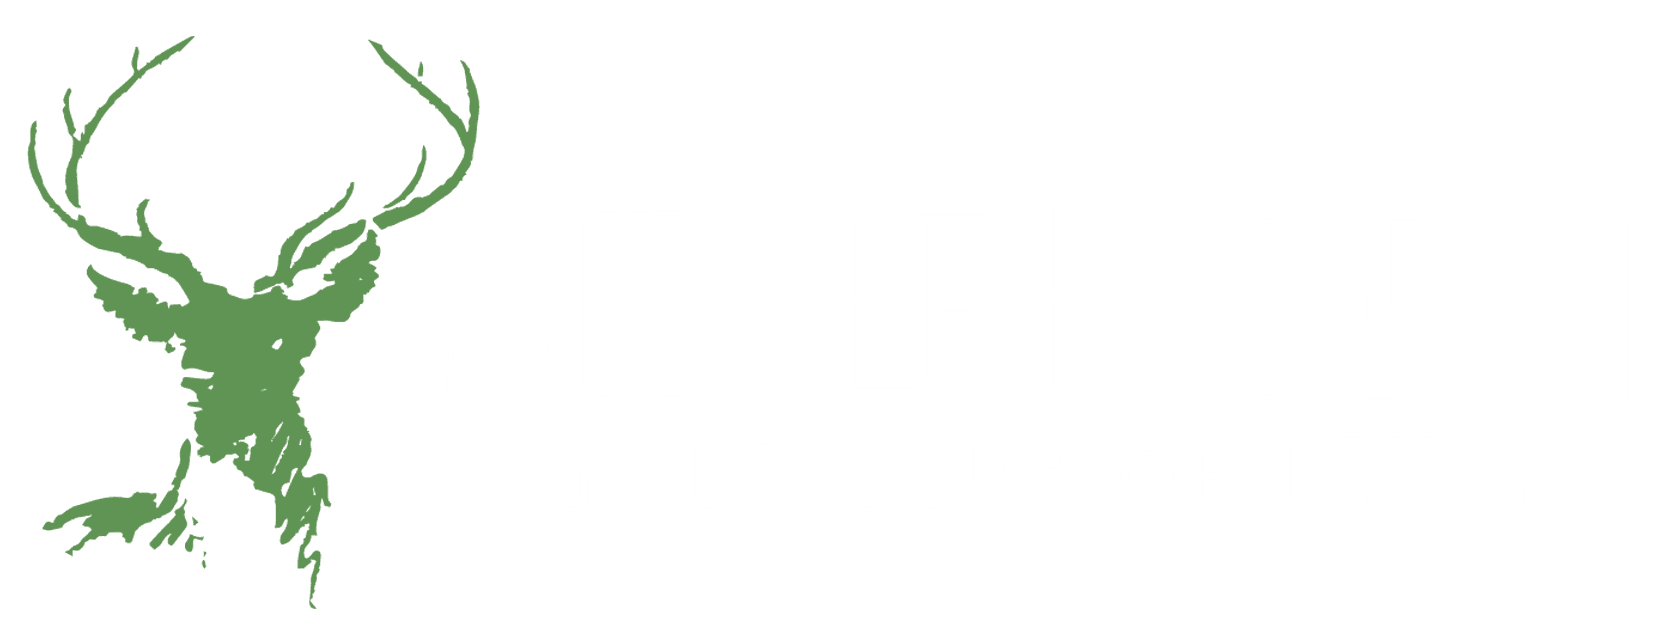 Home | SilverHorn Golf Club | San Antonio, TX San Antonio Golf Courses Map on central ohio golf courses map, cape breton golf courses map, east texas golf courses map, manila golf courses map, montreal golf courses map, hollywood golf courses map, southwest michigan golf courses map, outer banks golf courses map, west michigan golf courses map, barbados golf courses map, seattle area golf courses map, vancouver golf courses map, calgary golf courses map, delaware golf courses map, washington golf courses map, cabo san lucas golf courses map, northeast ohio golf courses map, fort myers golf courses map, henderson golf courses map, gatlinburg golf courses map,